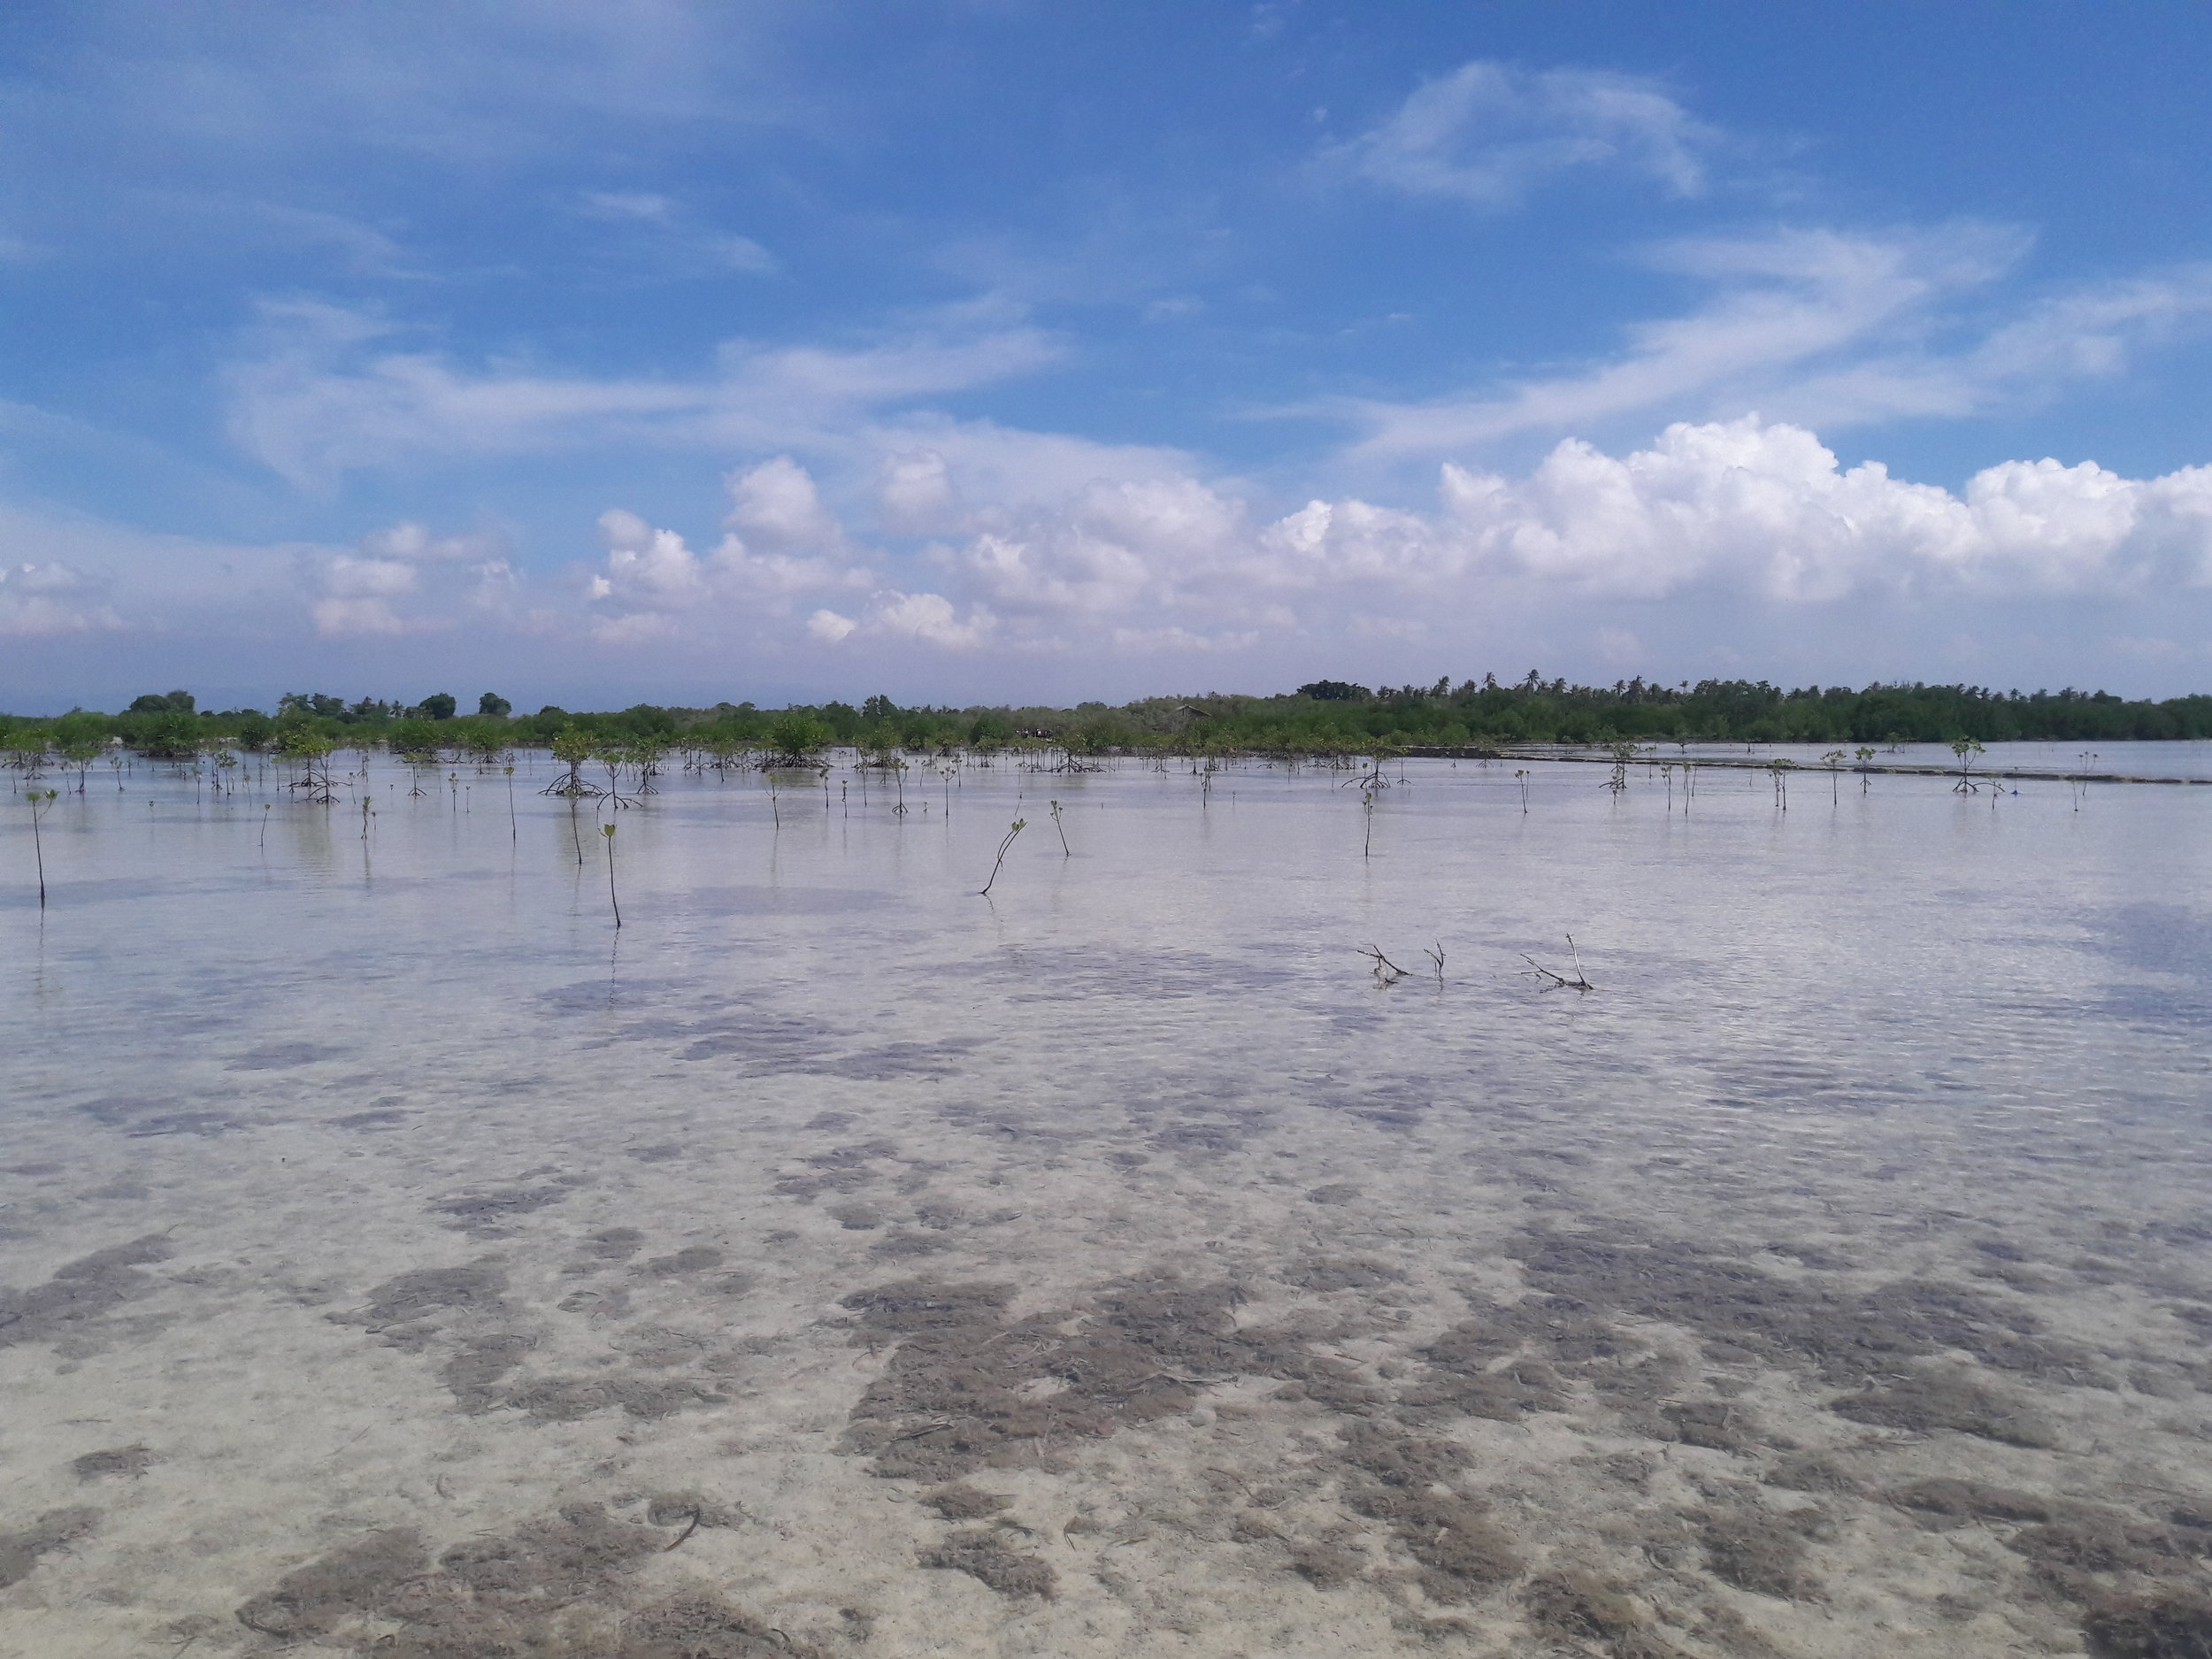 Mangroves, like these, in the Olango Island Wildlife Sanctuary in Cebu, play an important role in the ecosystem, serving as biodiversity protection, among other benefits.